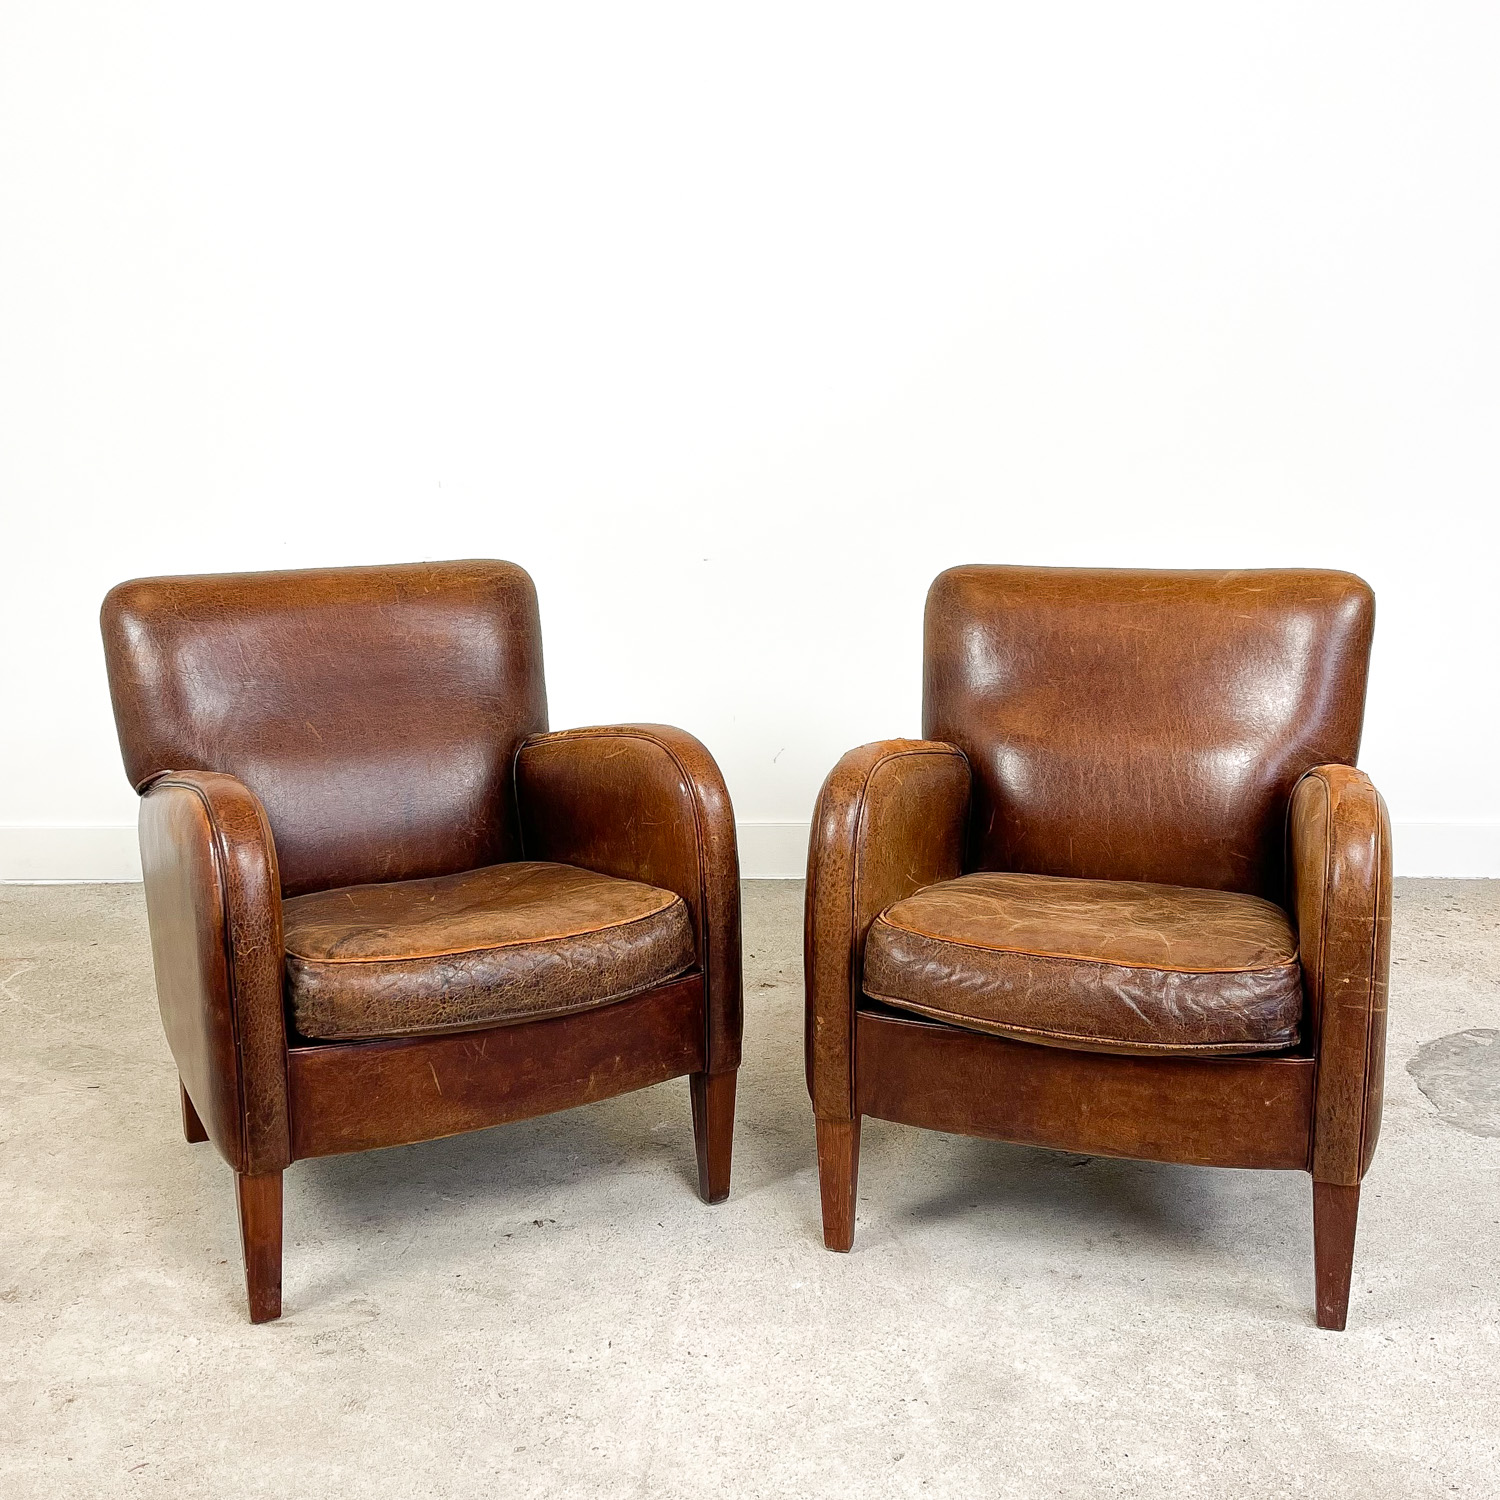 Set of two vintage sheep leather armchairs